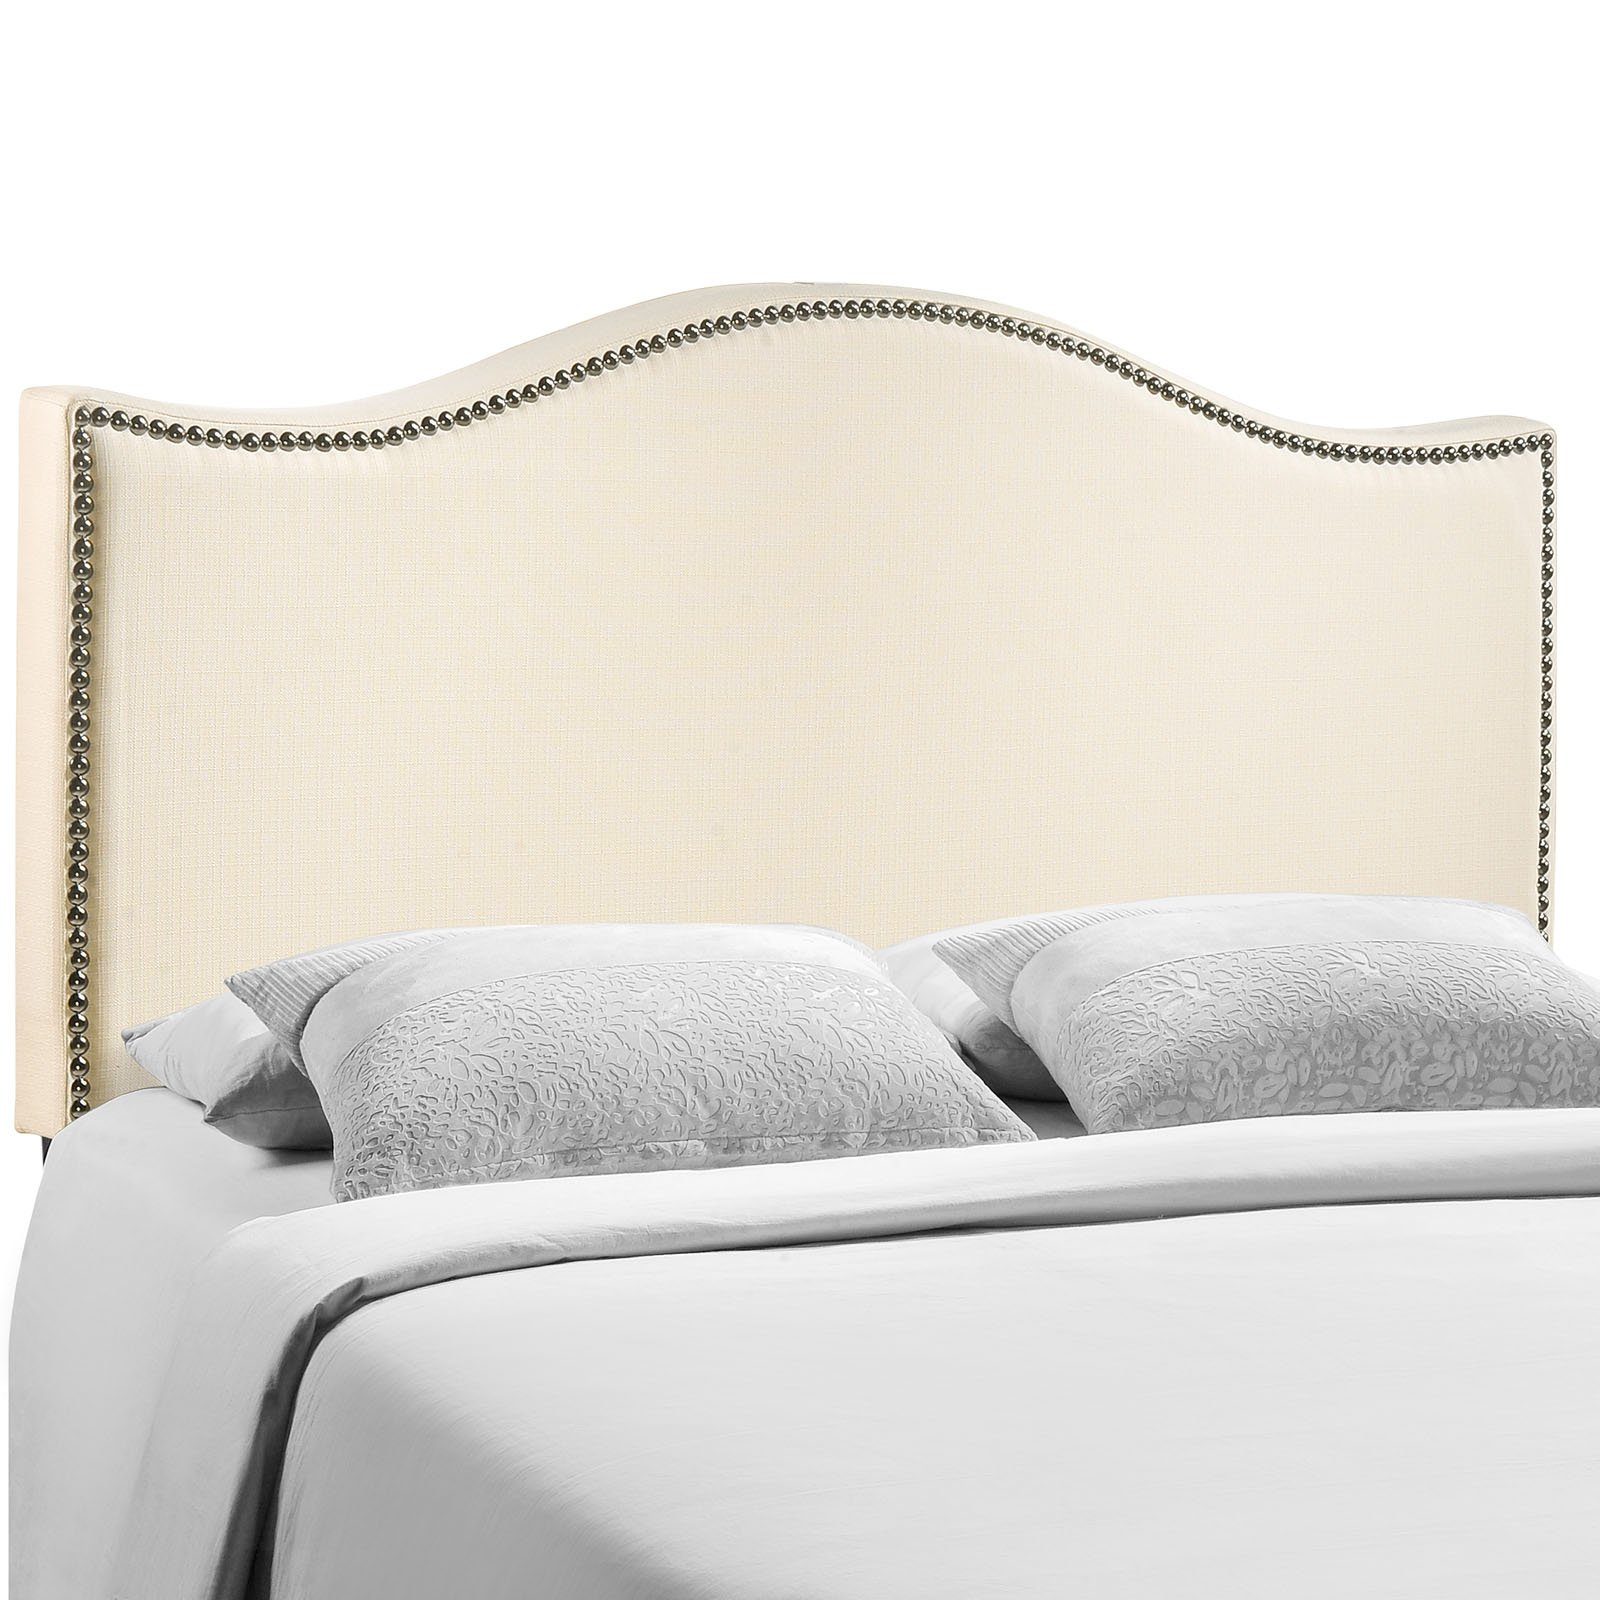 Modway Curl Linen Fabric Upholstered Queen Headboard with Nailhead Trim and Curved Shape in Ivory by Modway